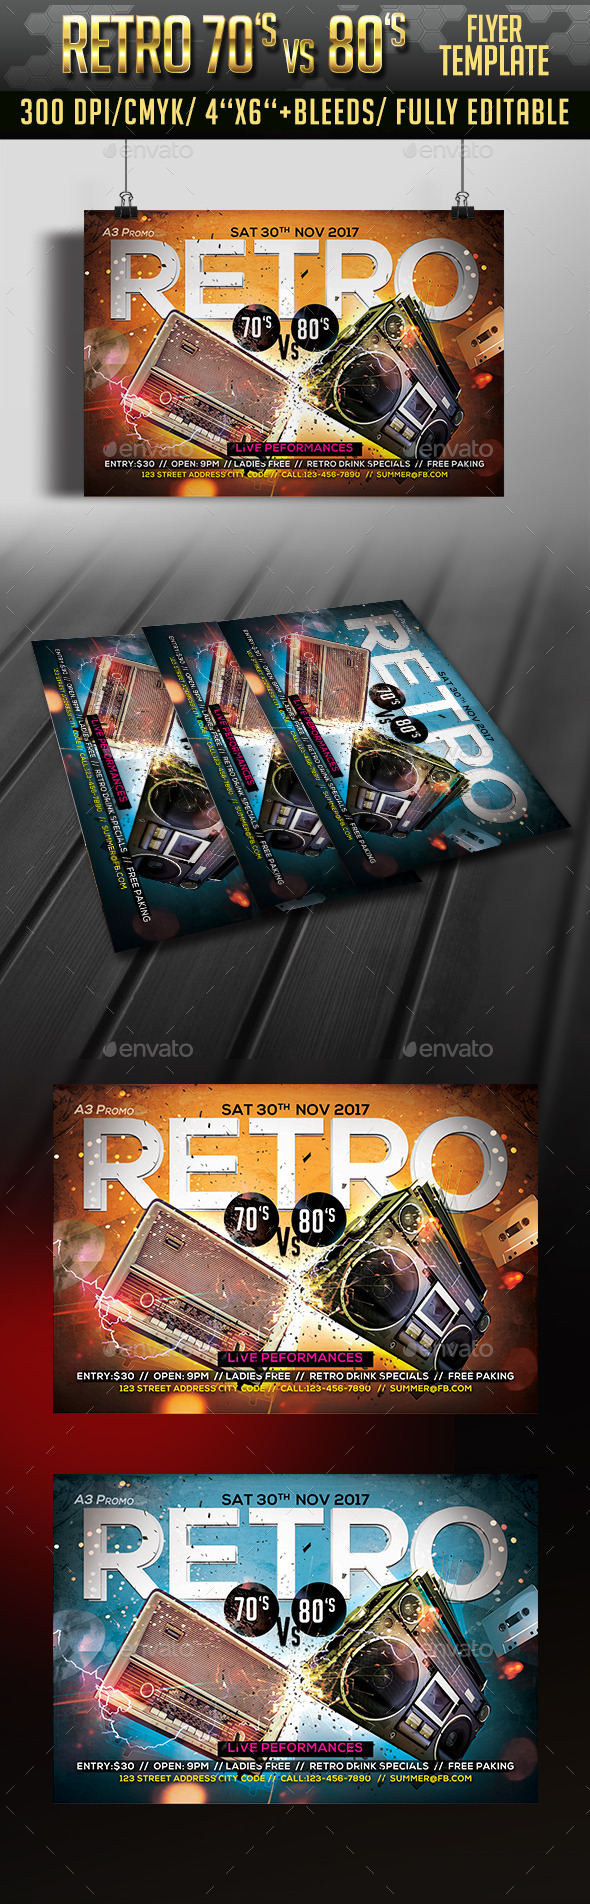 Retro 70's vs 80's Flyer